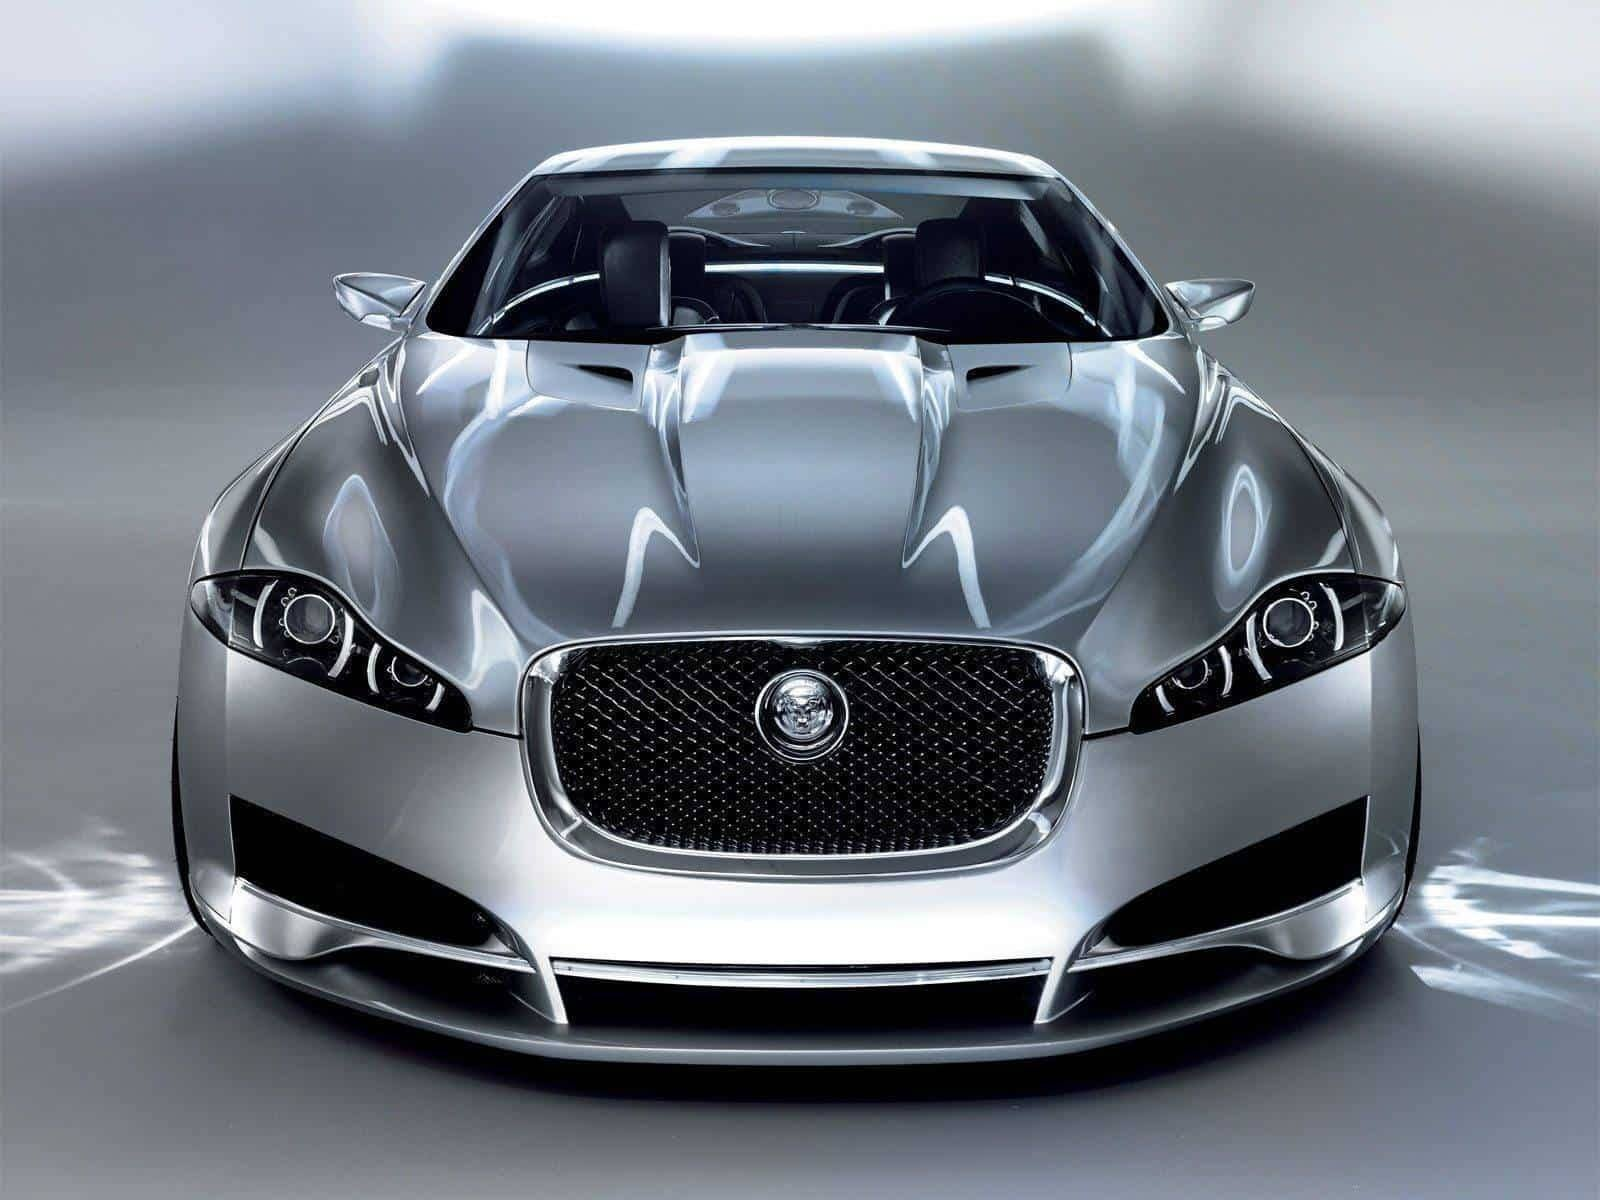 Jaguar – set your pulse racing